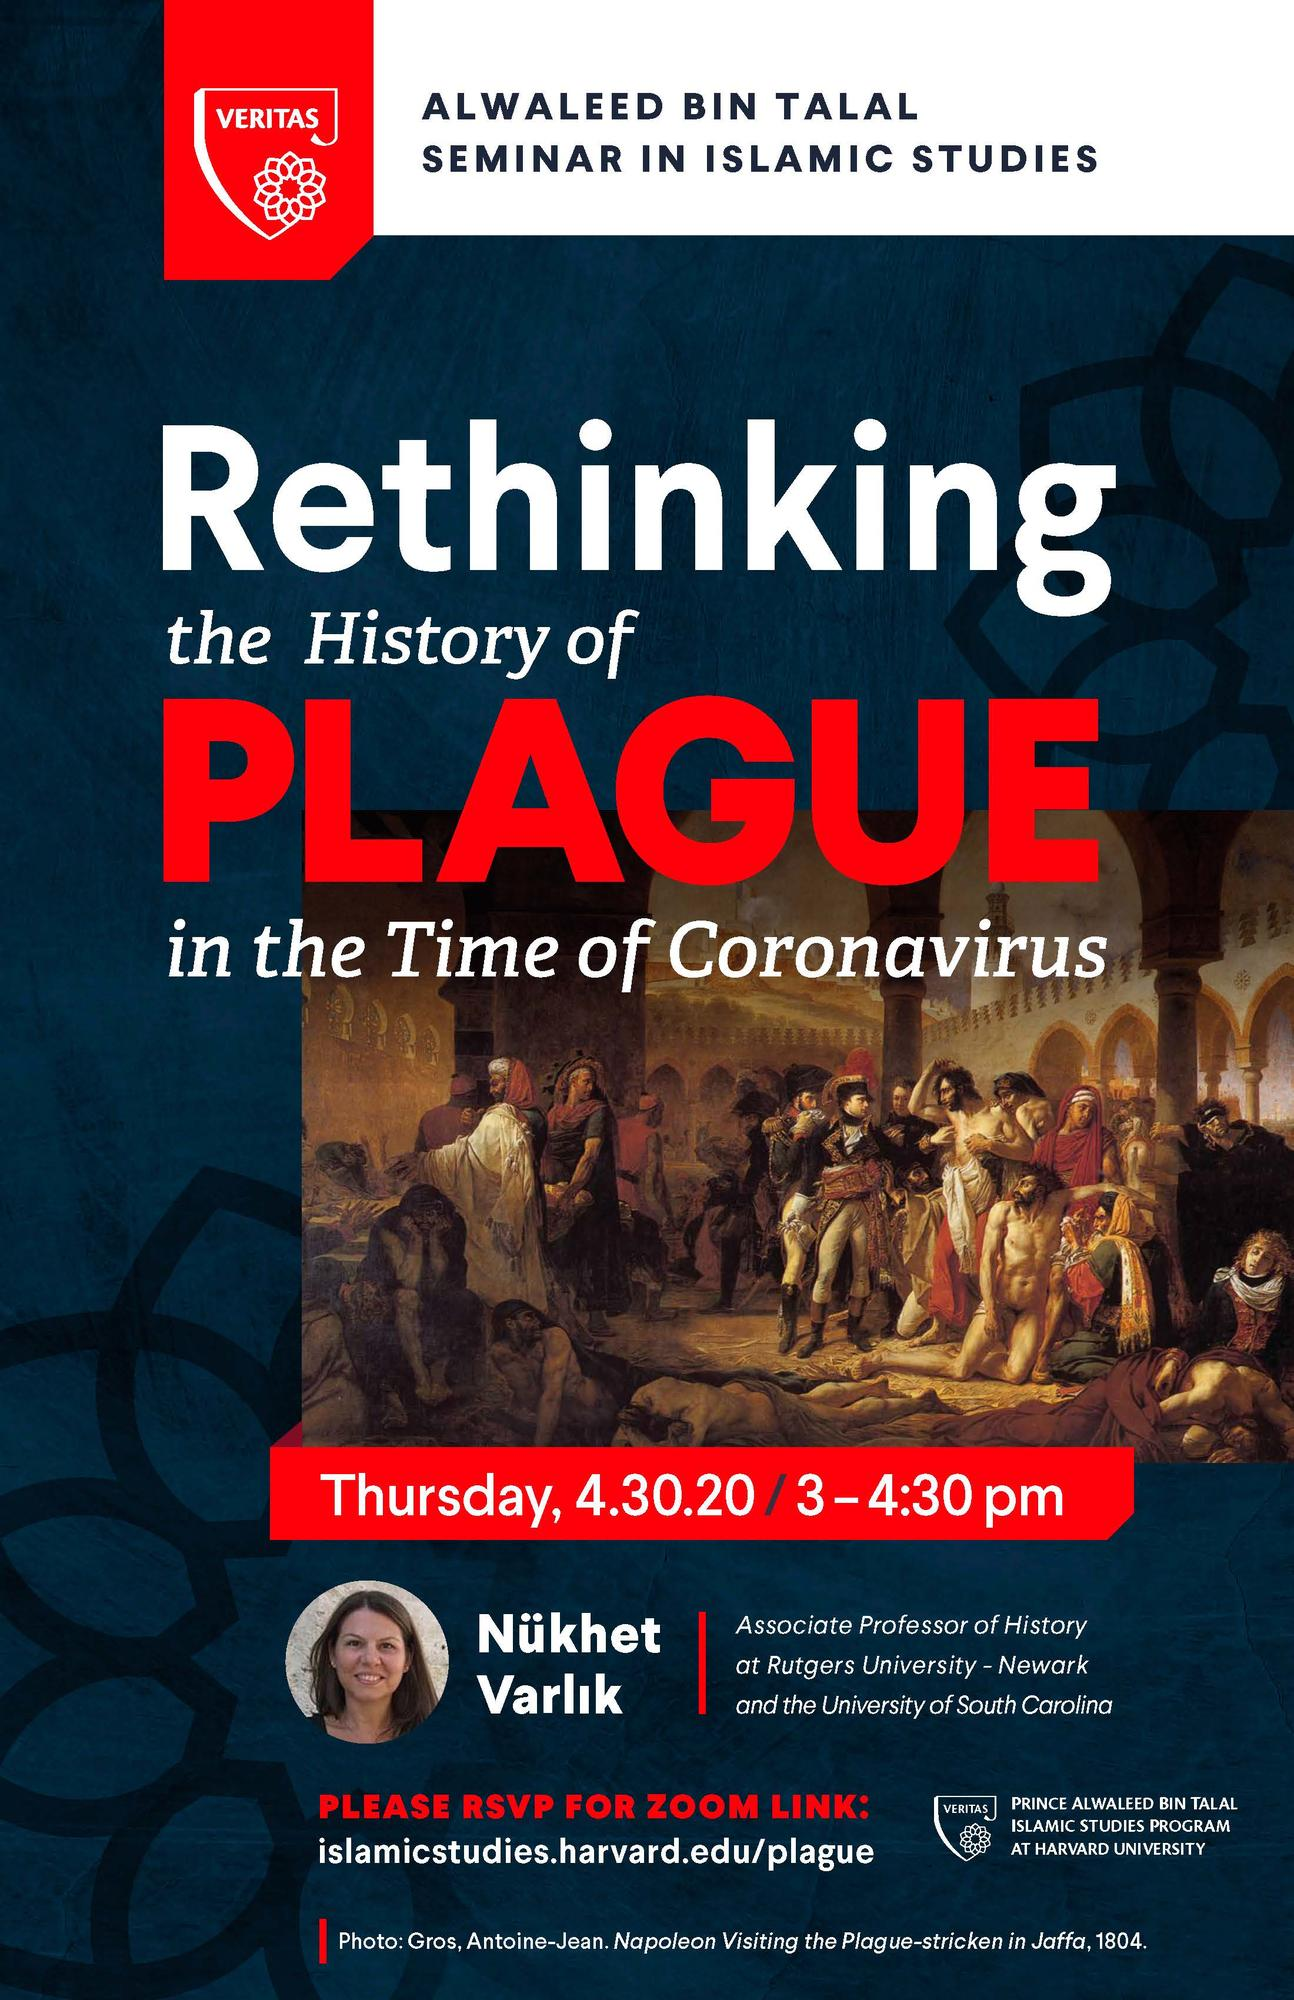 Rethinking the History of Plague in the time of Cononavirus